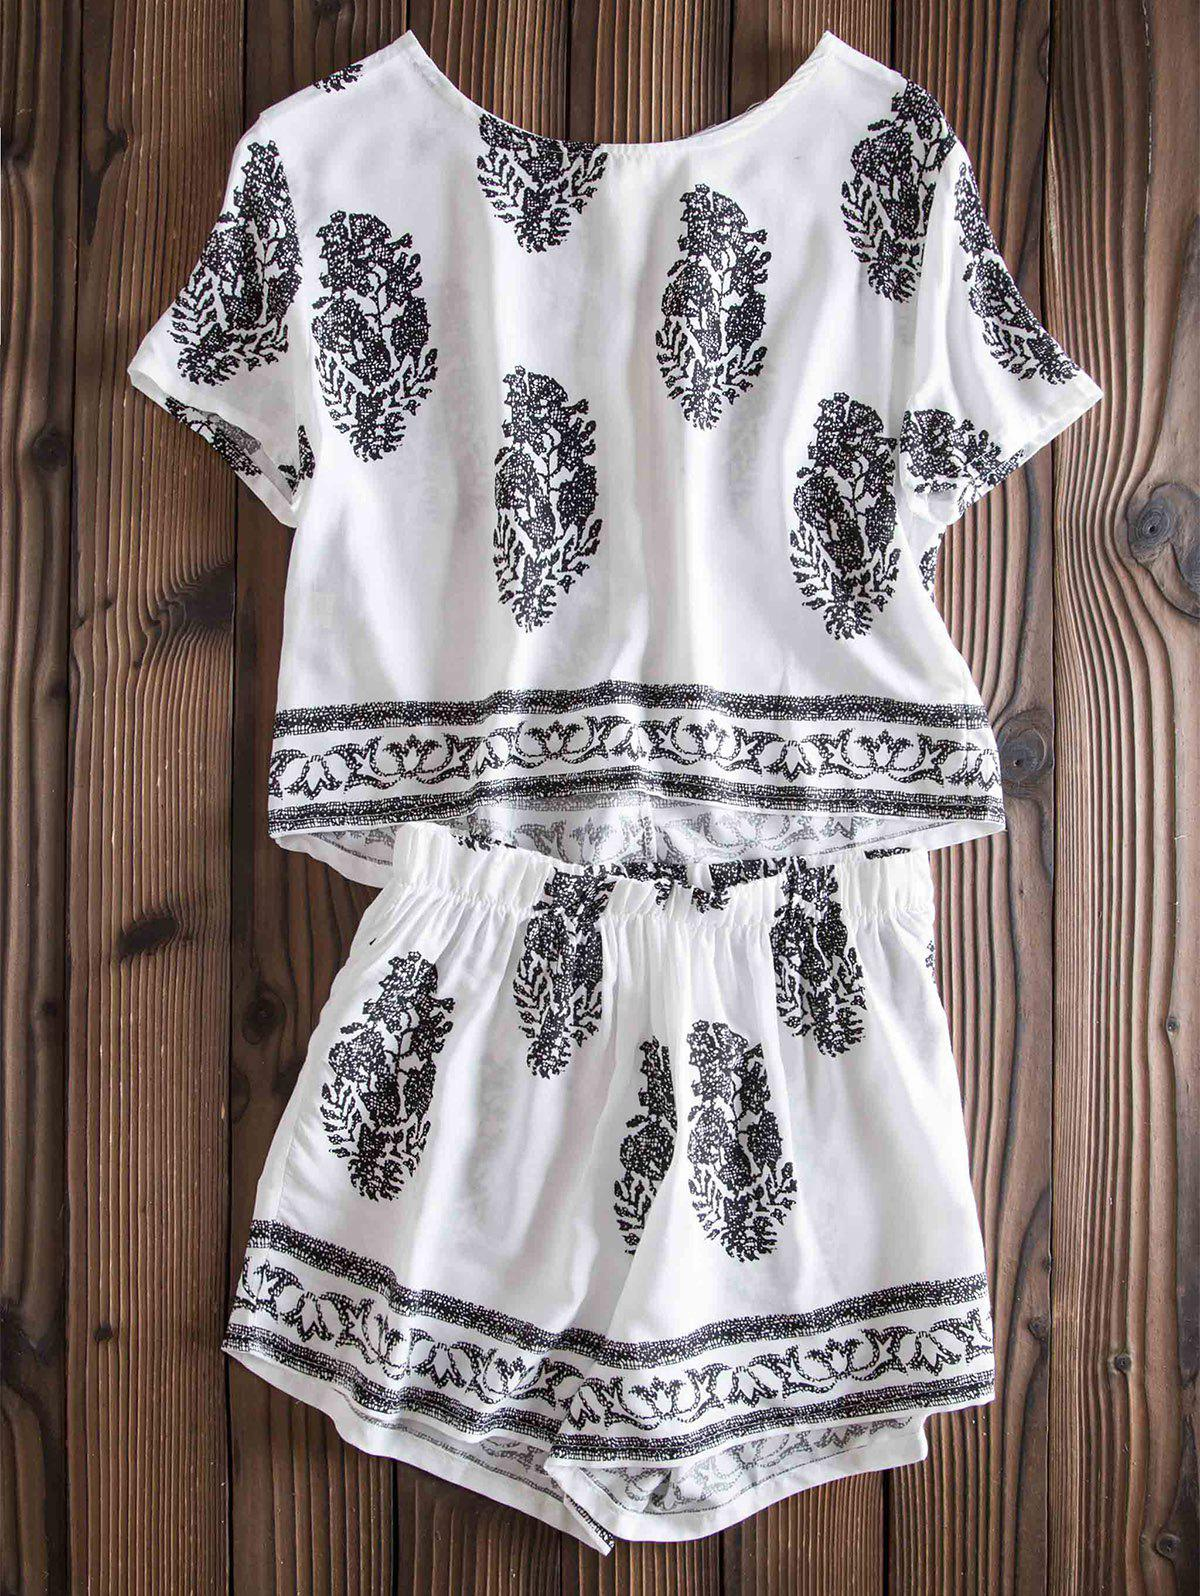 Stylish Women's Jewel Neck Short Sleeve Print Suit